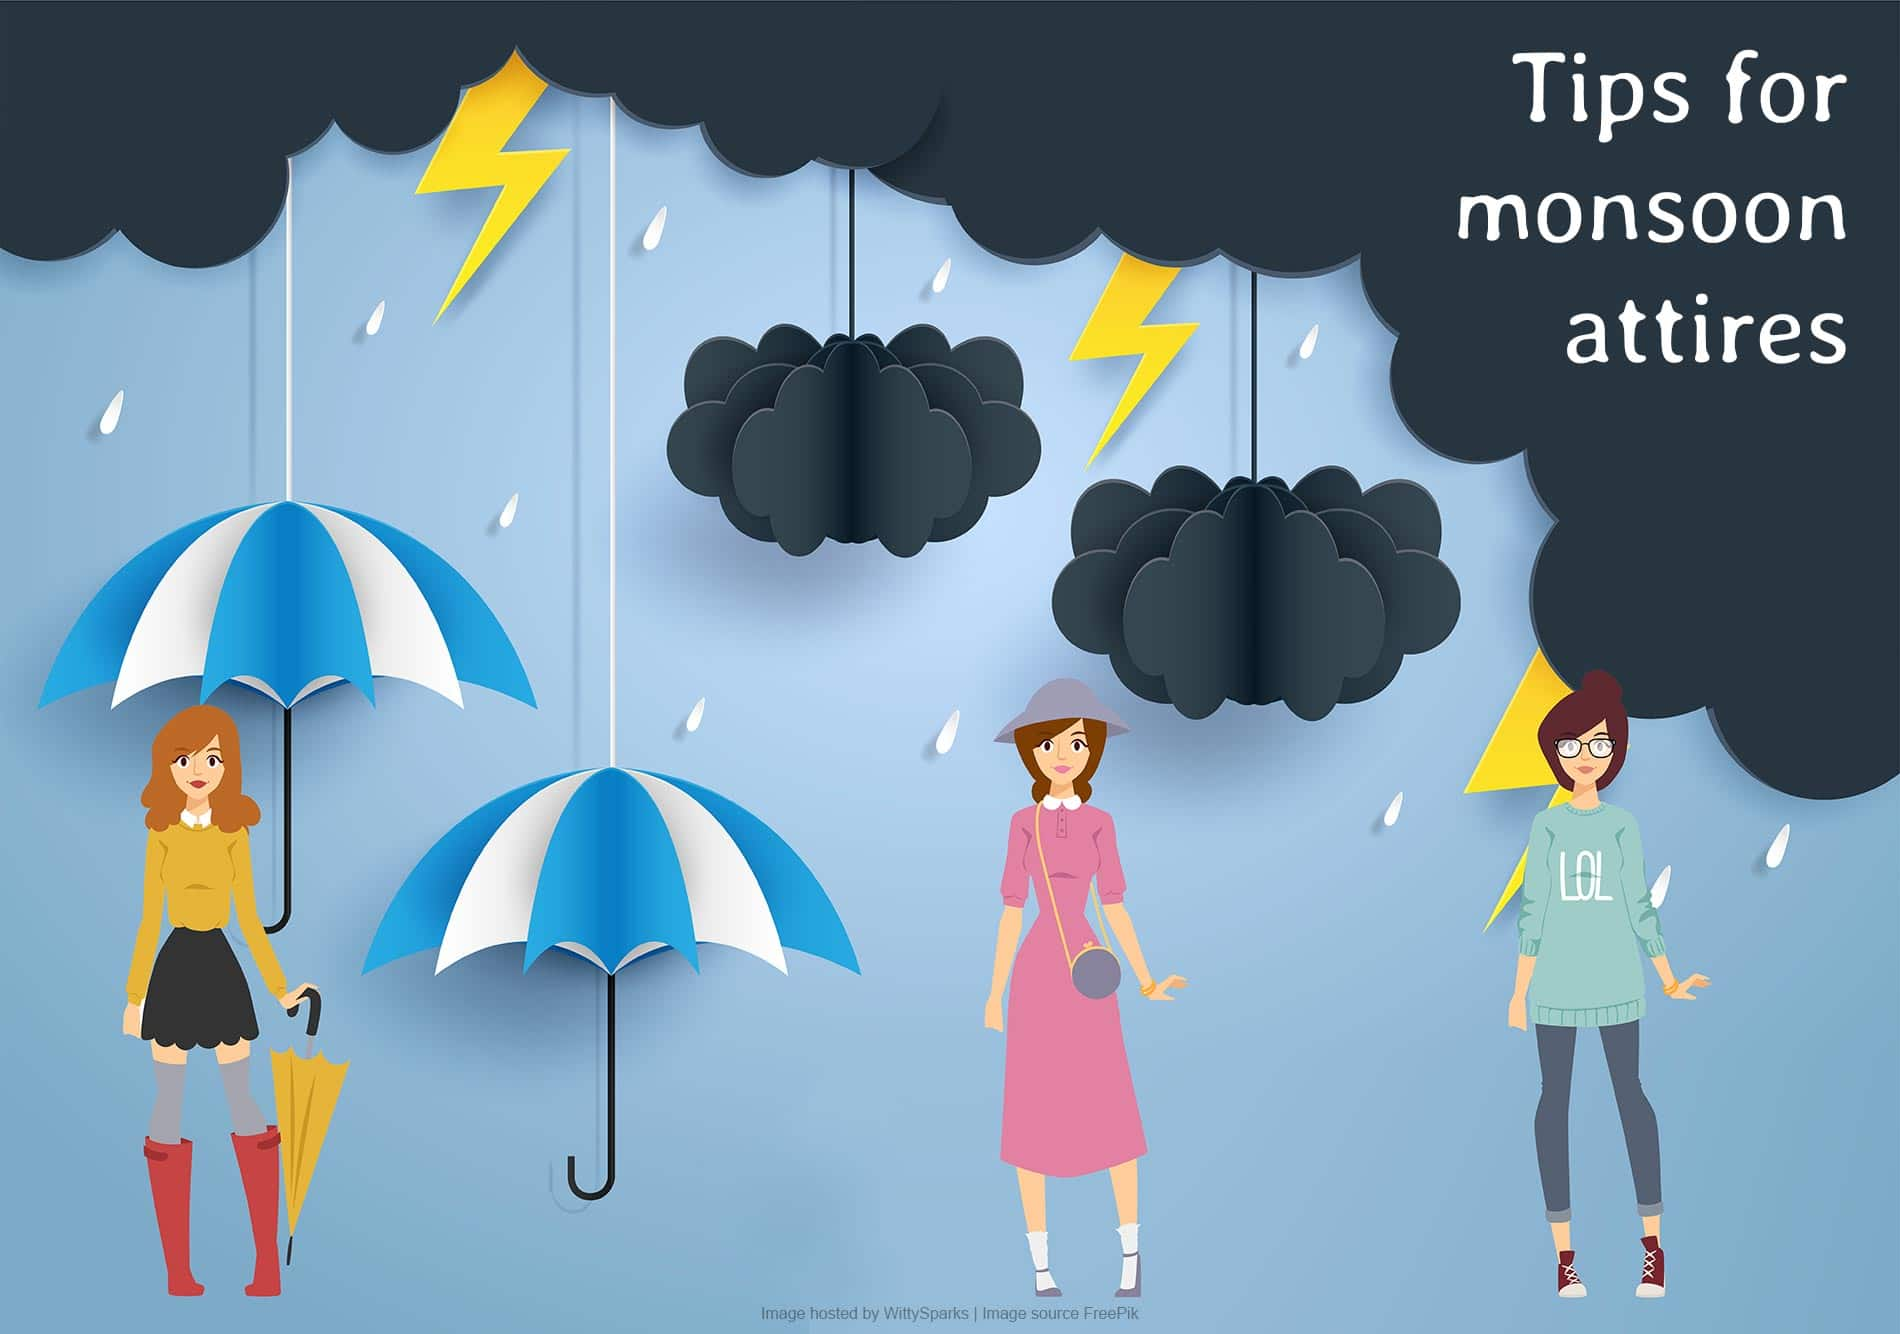 Fashion tips for monsoon attires